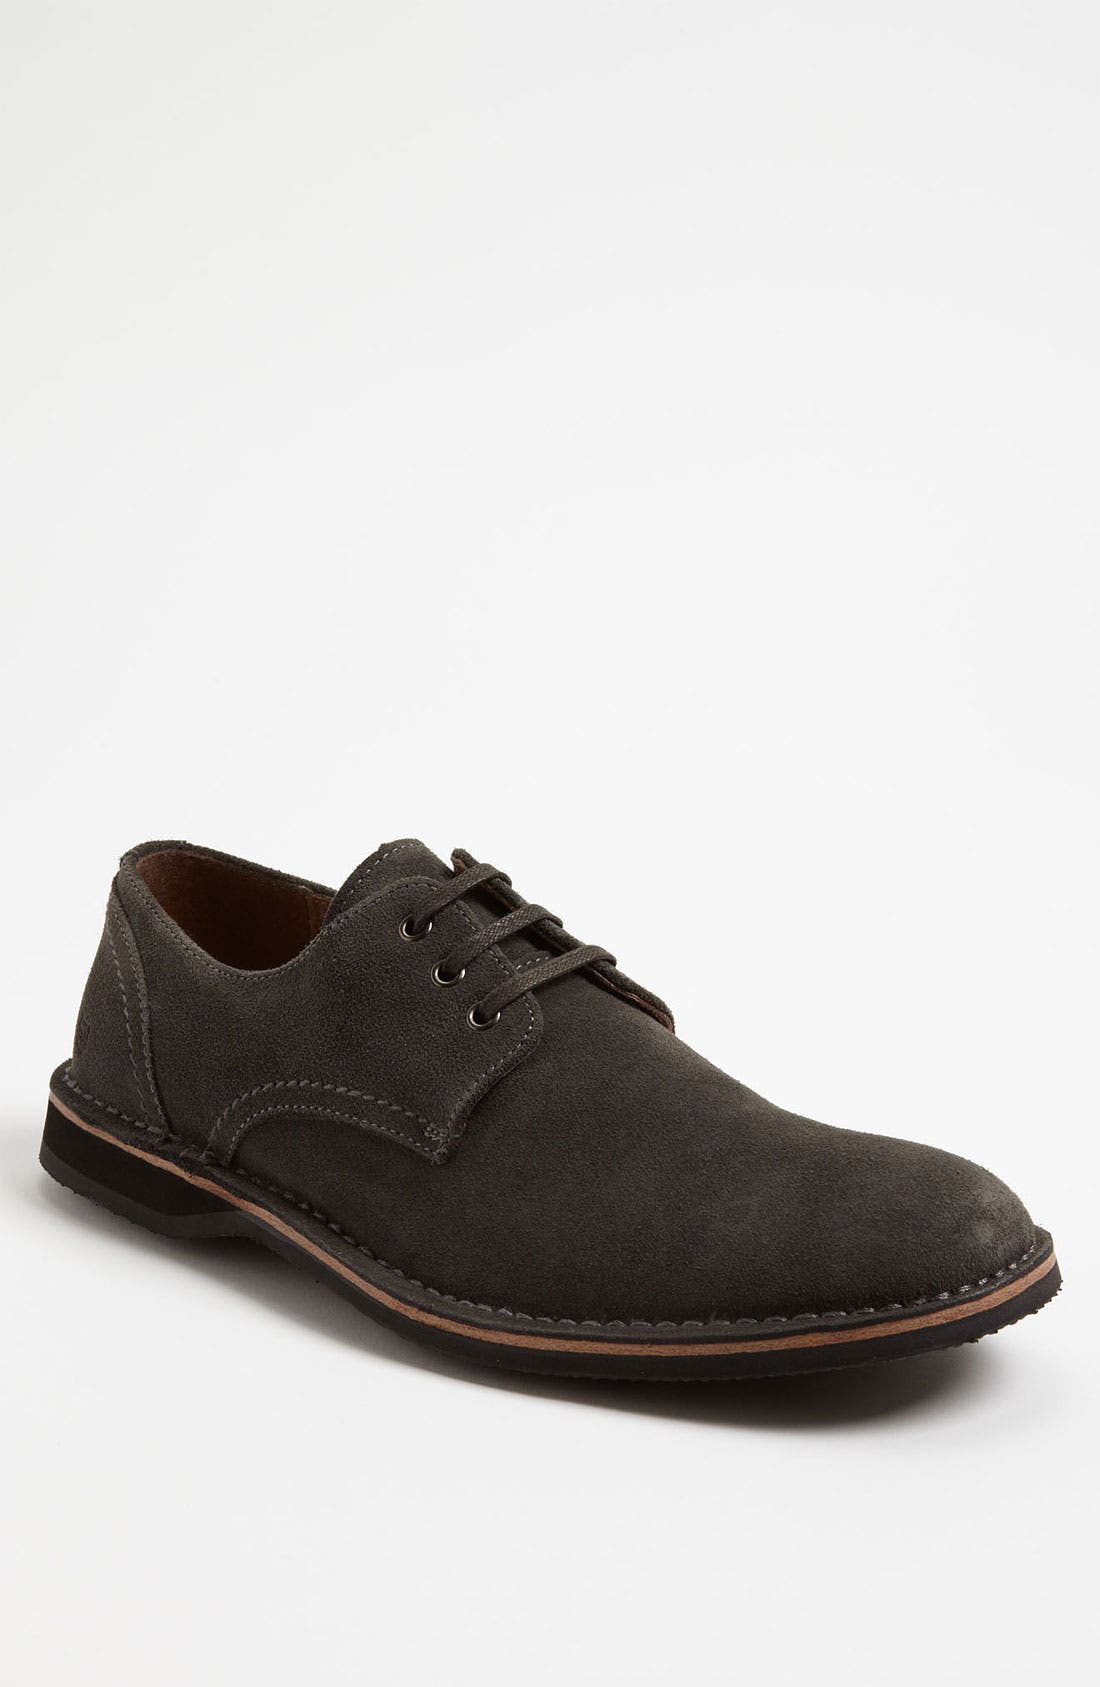 Main Image - Andrew Marc 'Dorchester' Buck Shoe (Men)